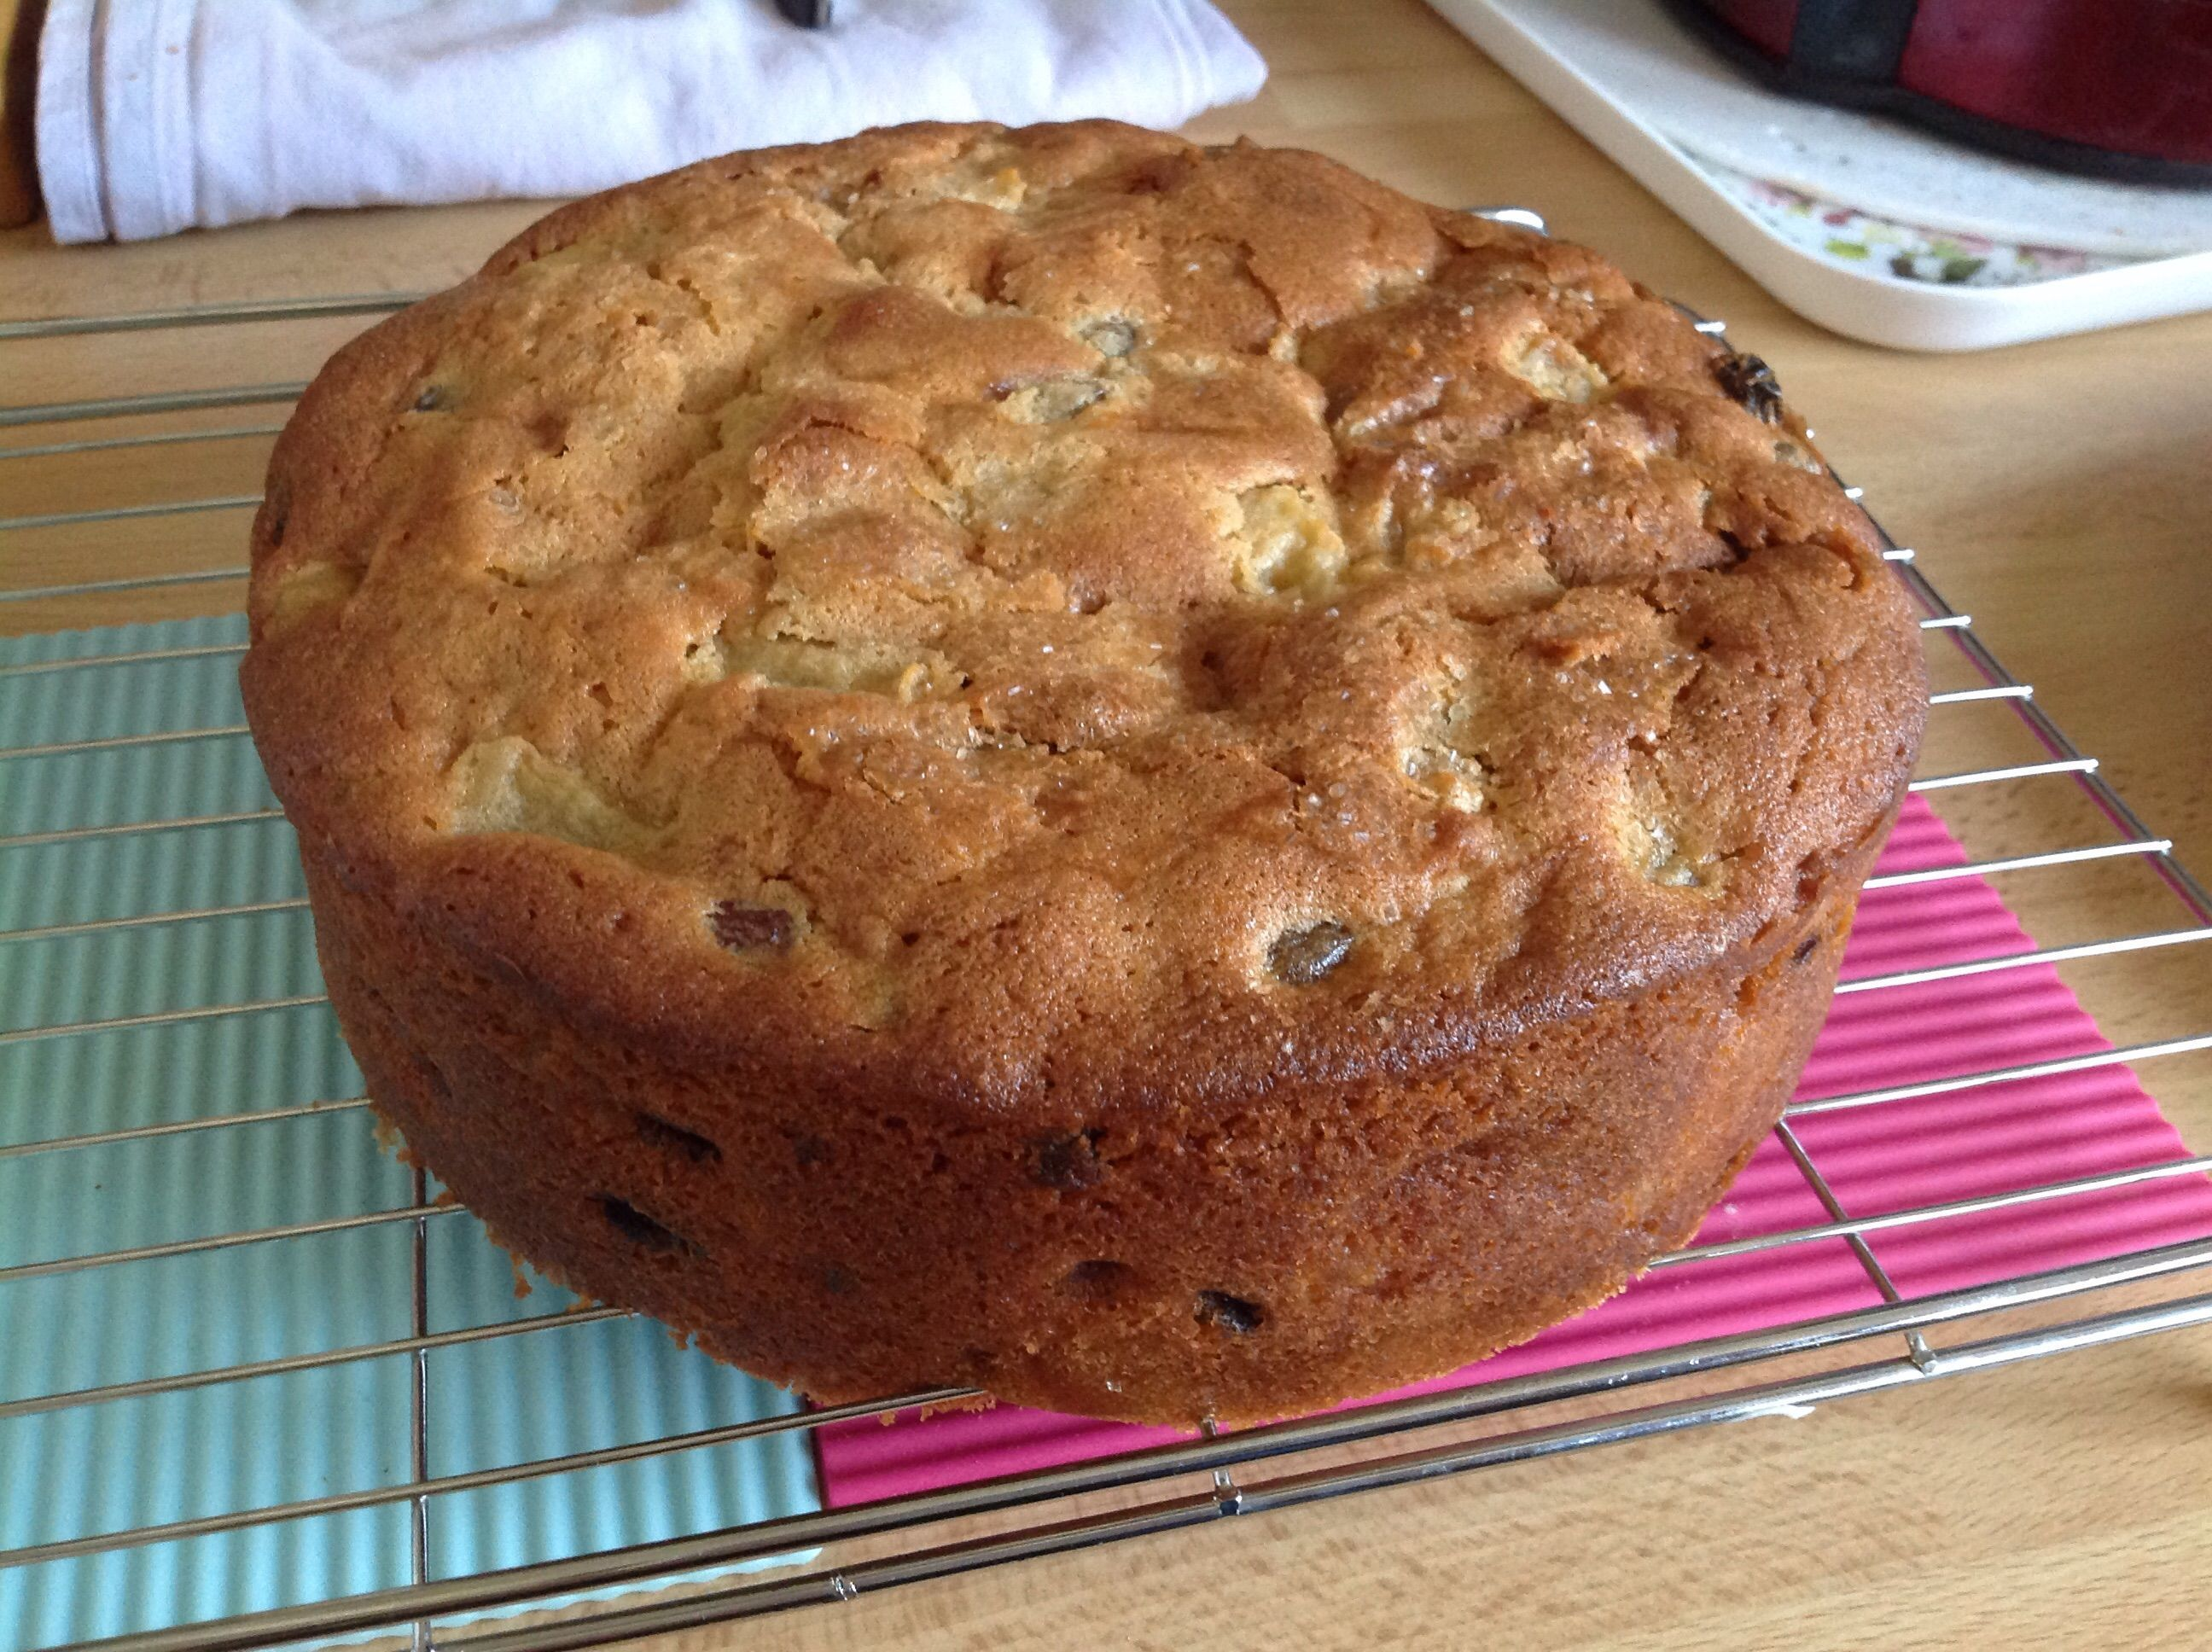 Low fat apple and sultana cake recipe